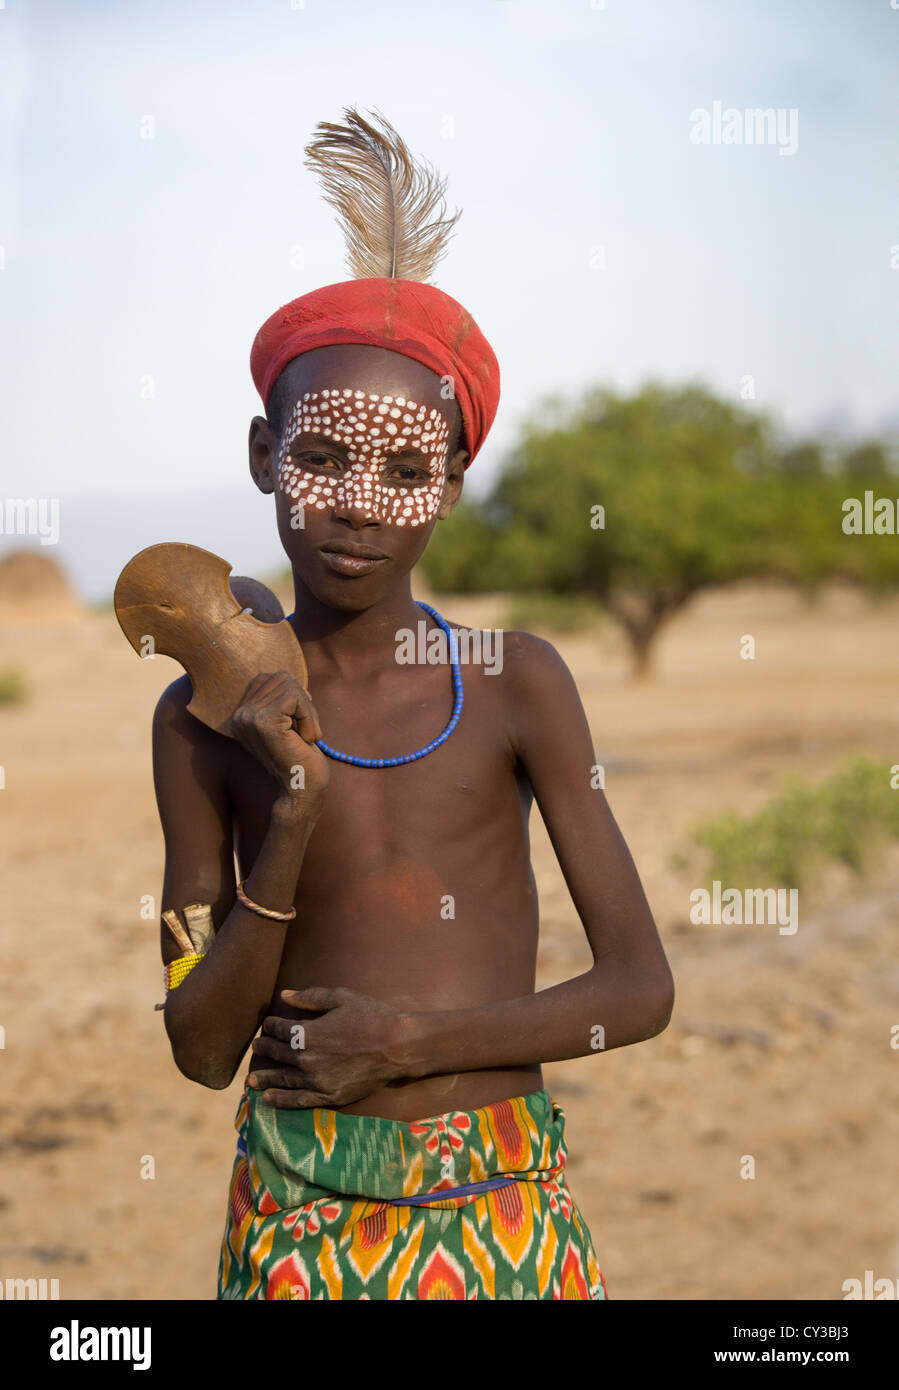 Young boy of the Erbore tribe, Omo River Valley, Ethiopia Stock Photo